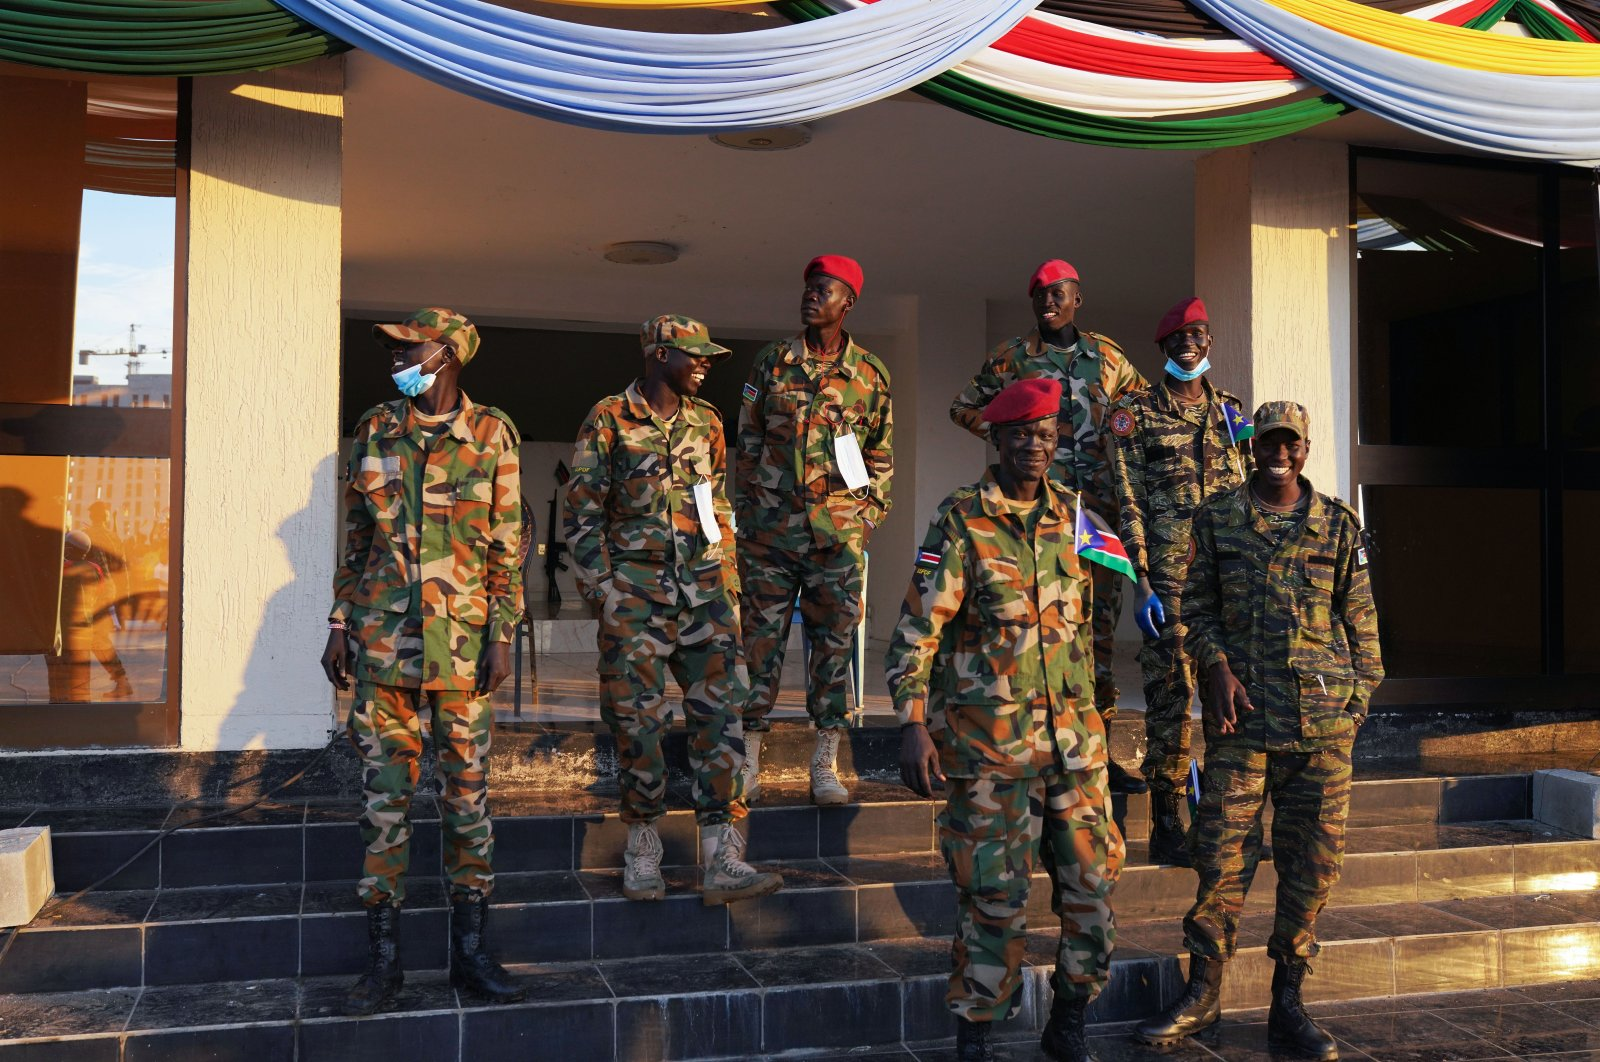 SSPDF (South Sudan People's Defence Force) soldiers are seen during the country's 10th anniversary since independence, Juba, South Sudan, on July 9, 2021. (Getty Images)